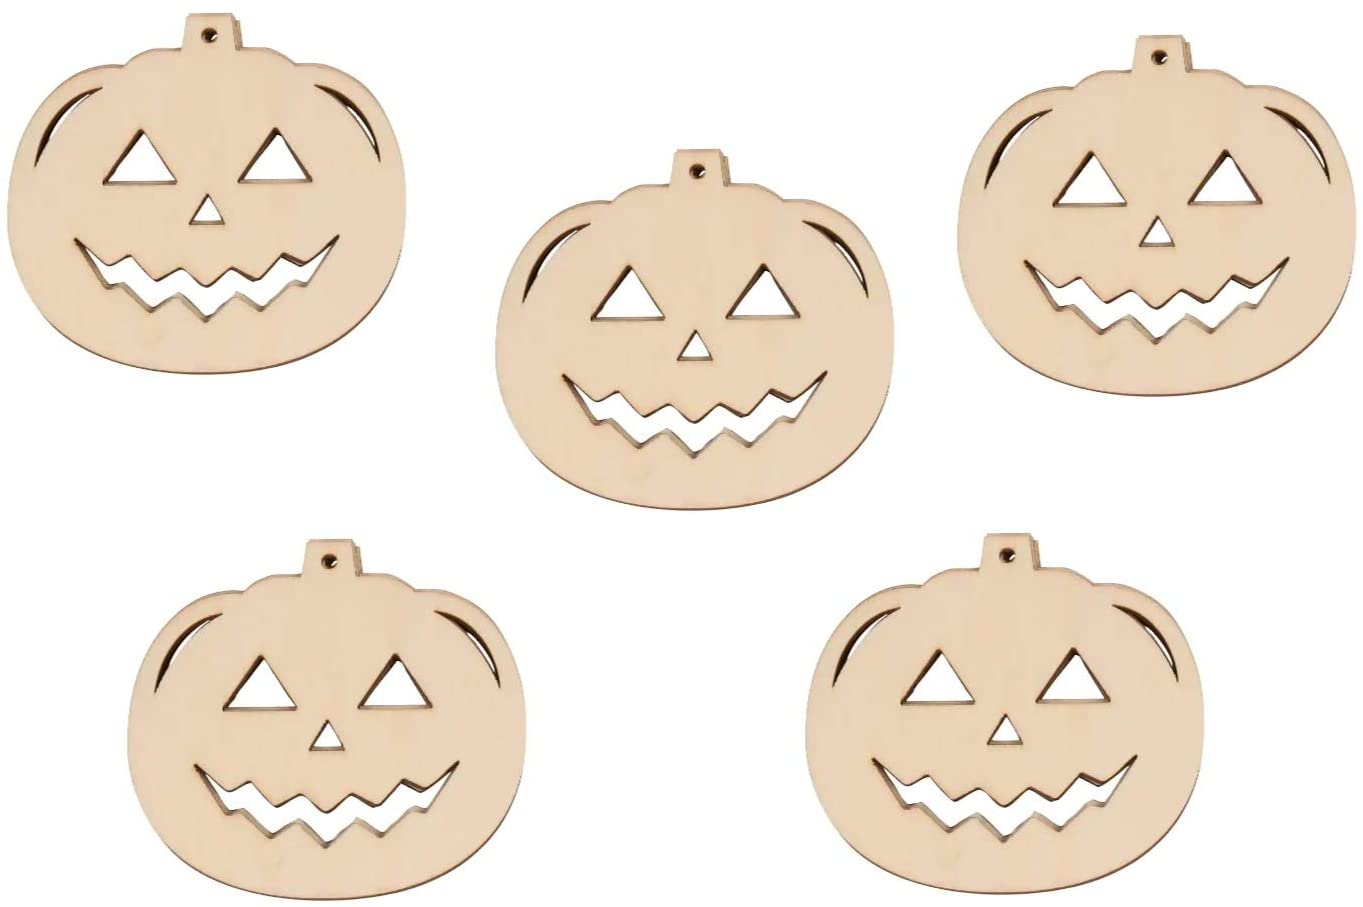 Set of Natural Wood Halloween Pumpkin Jack-o'-Lantern Shaped Cutouts - Holiday DIY Crafting Color Decorate Your Own Ornament Kit